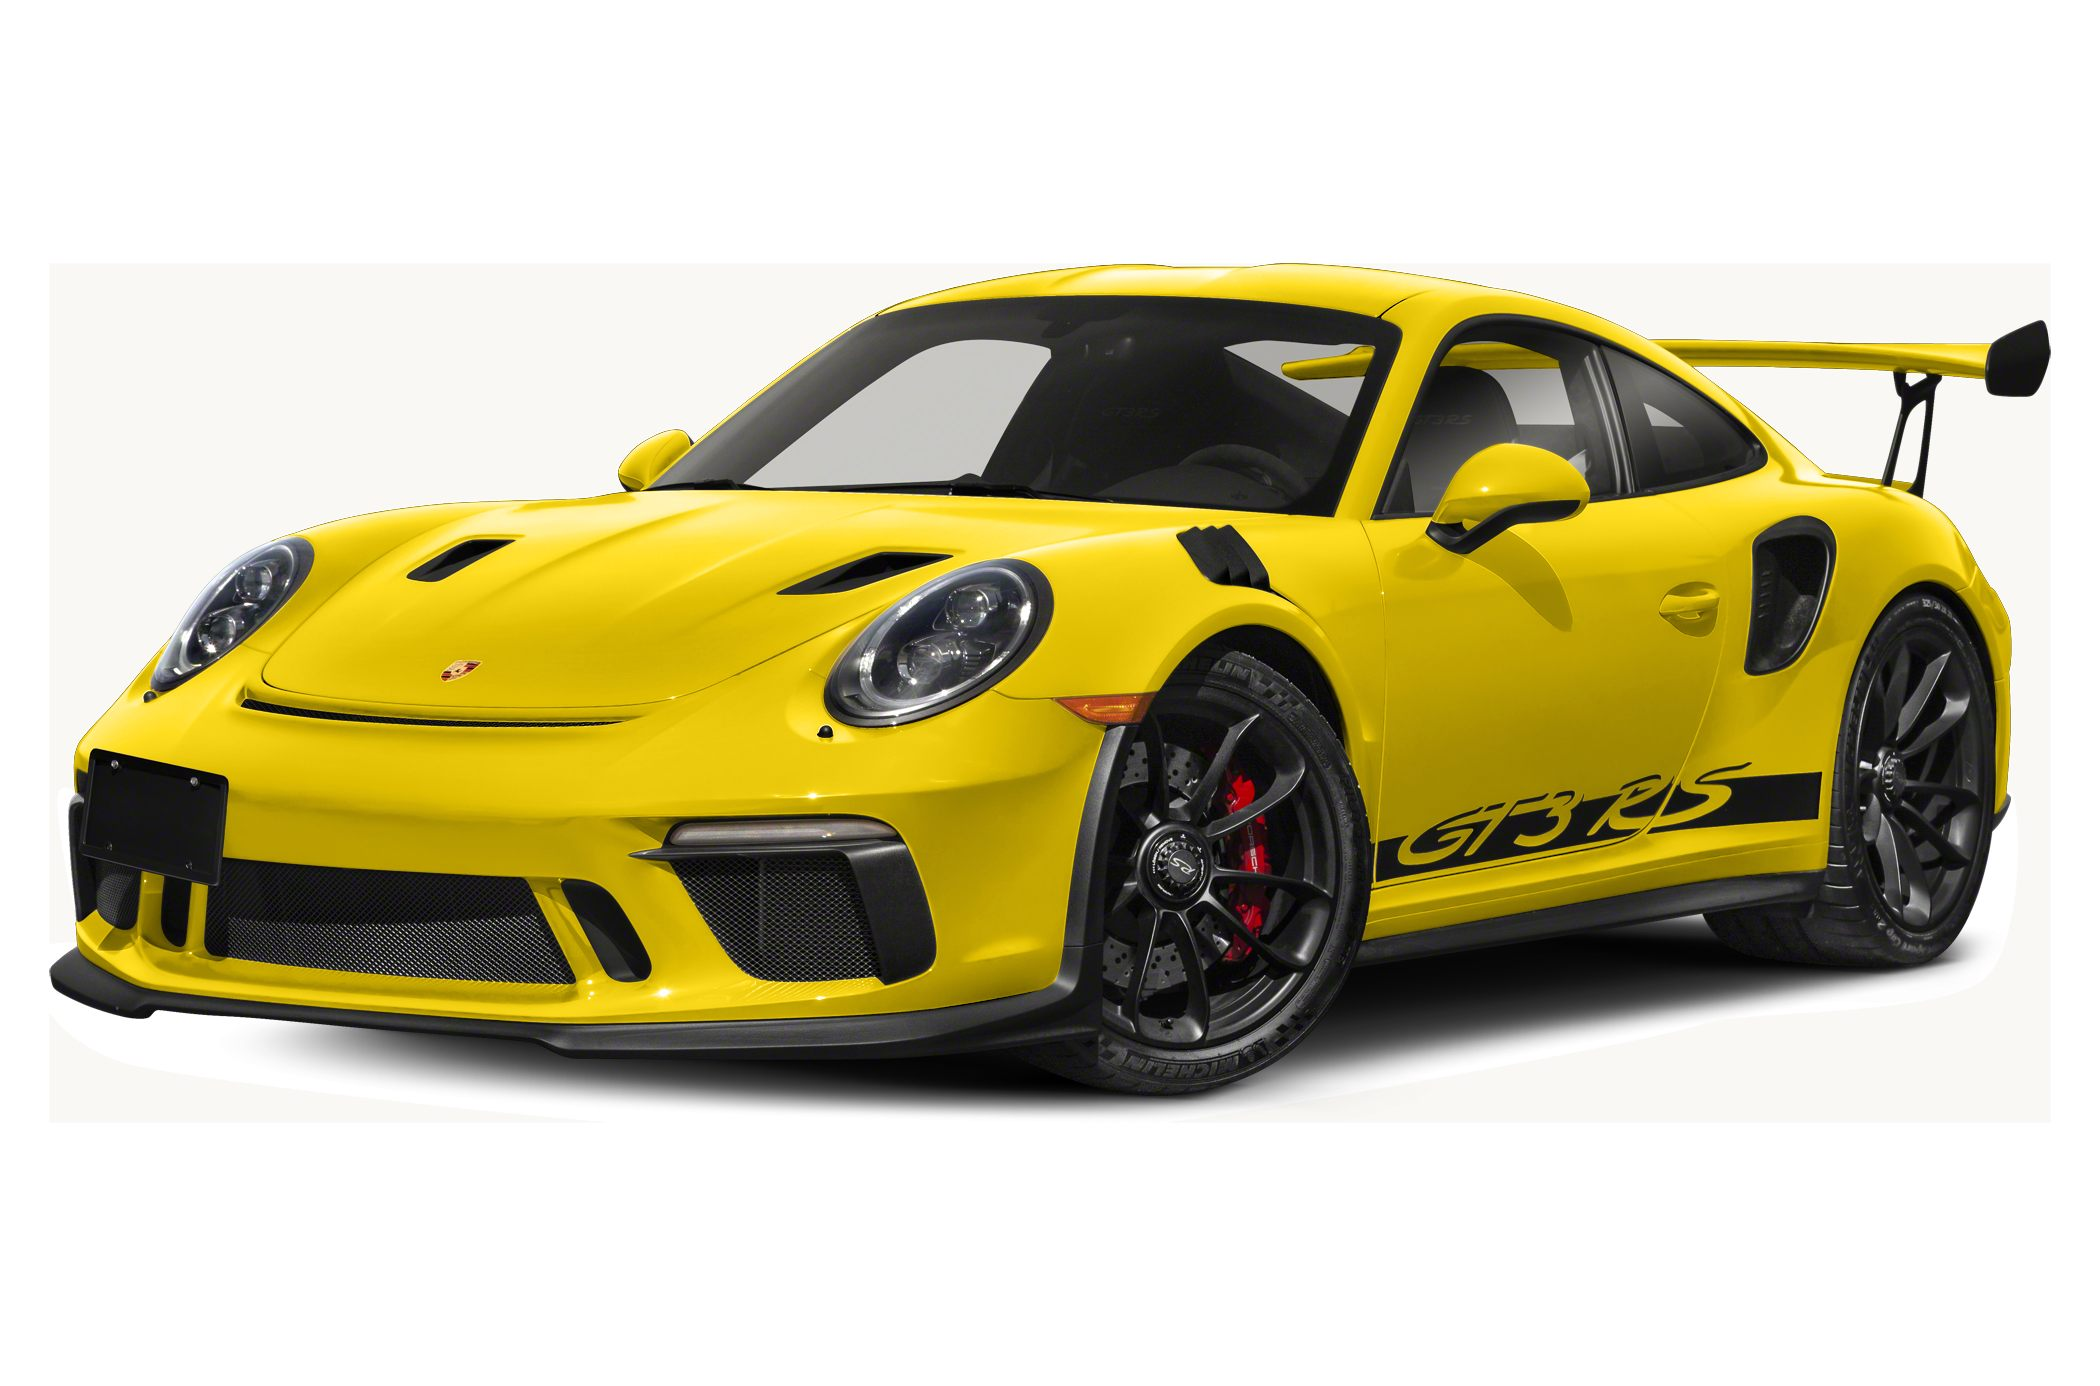 2019 Porsche 911 Gt3 Rs 2dr Rear Wheel Drive Coupe Specs And Prices